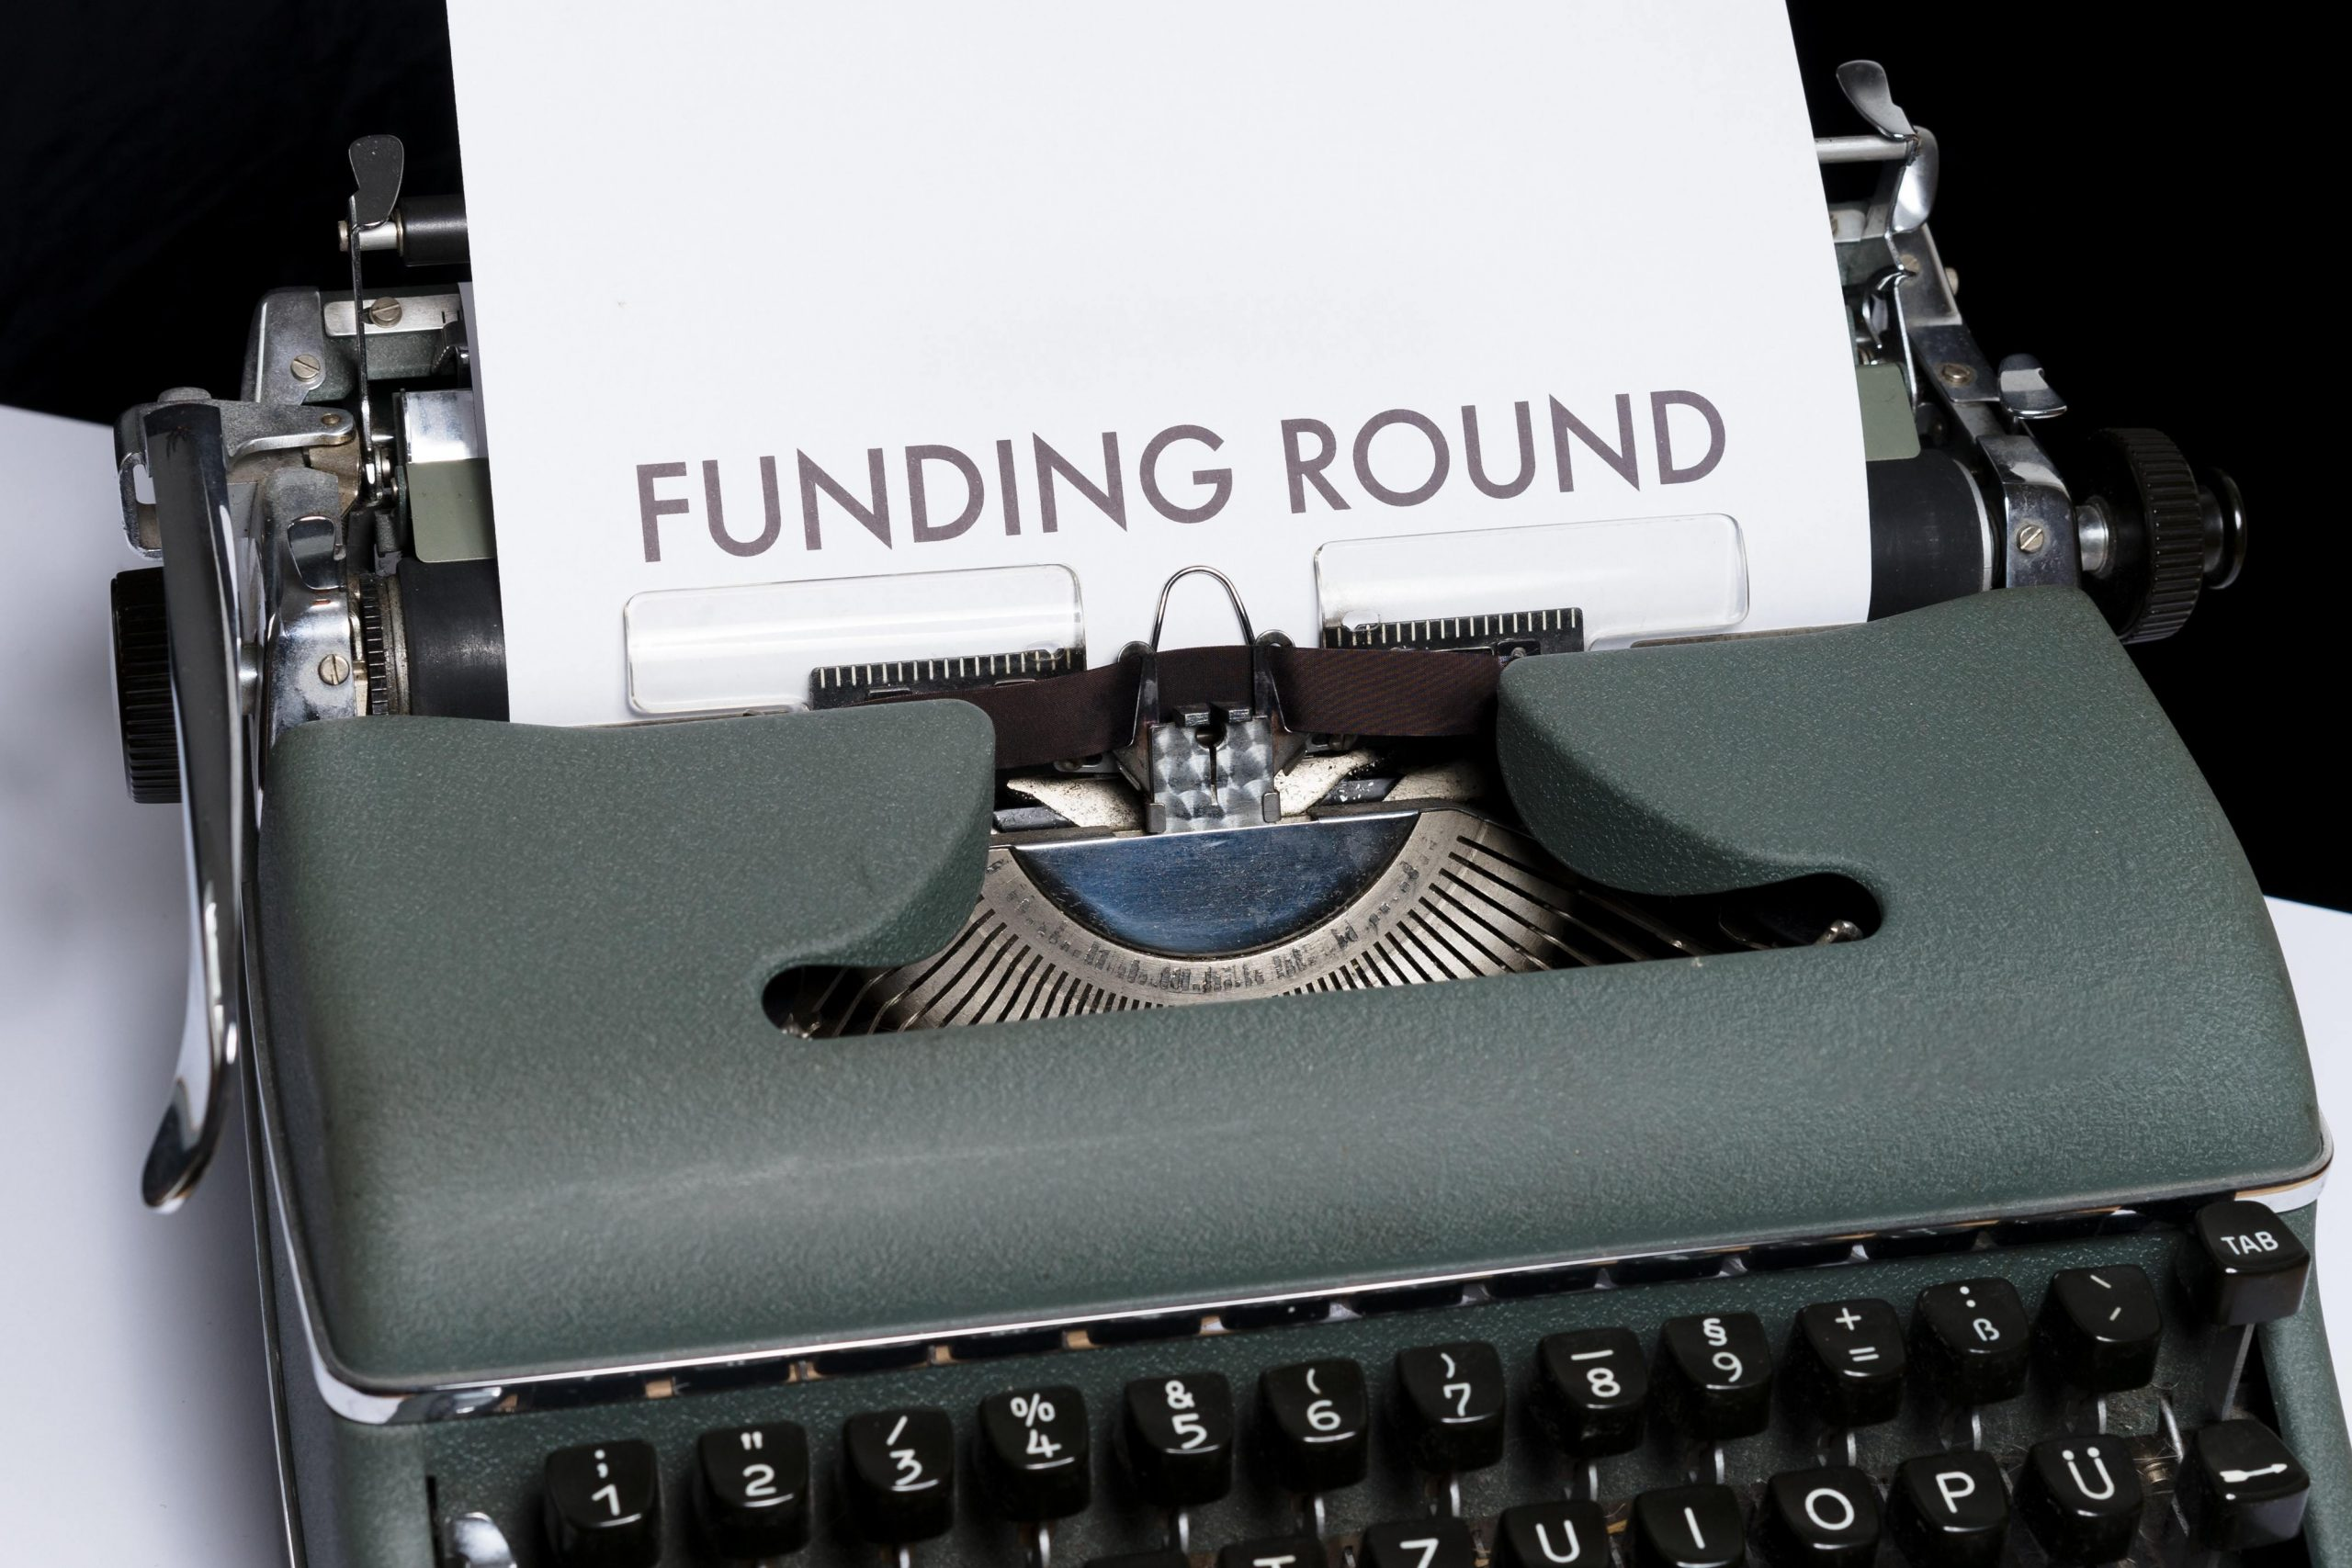 The Future of Trusts, Statutory and Institutional Fundraising